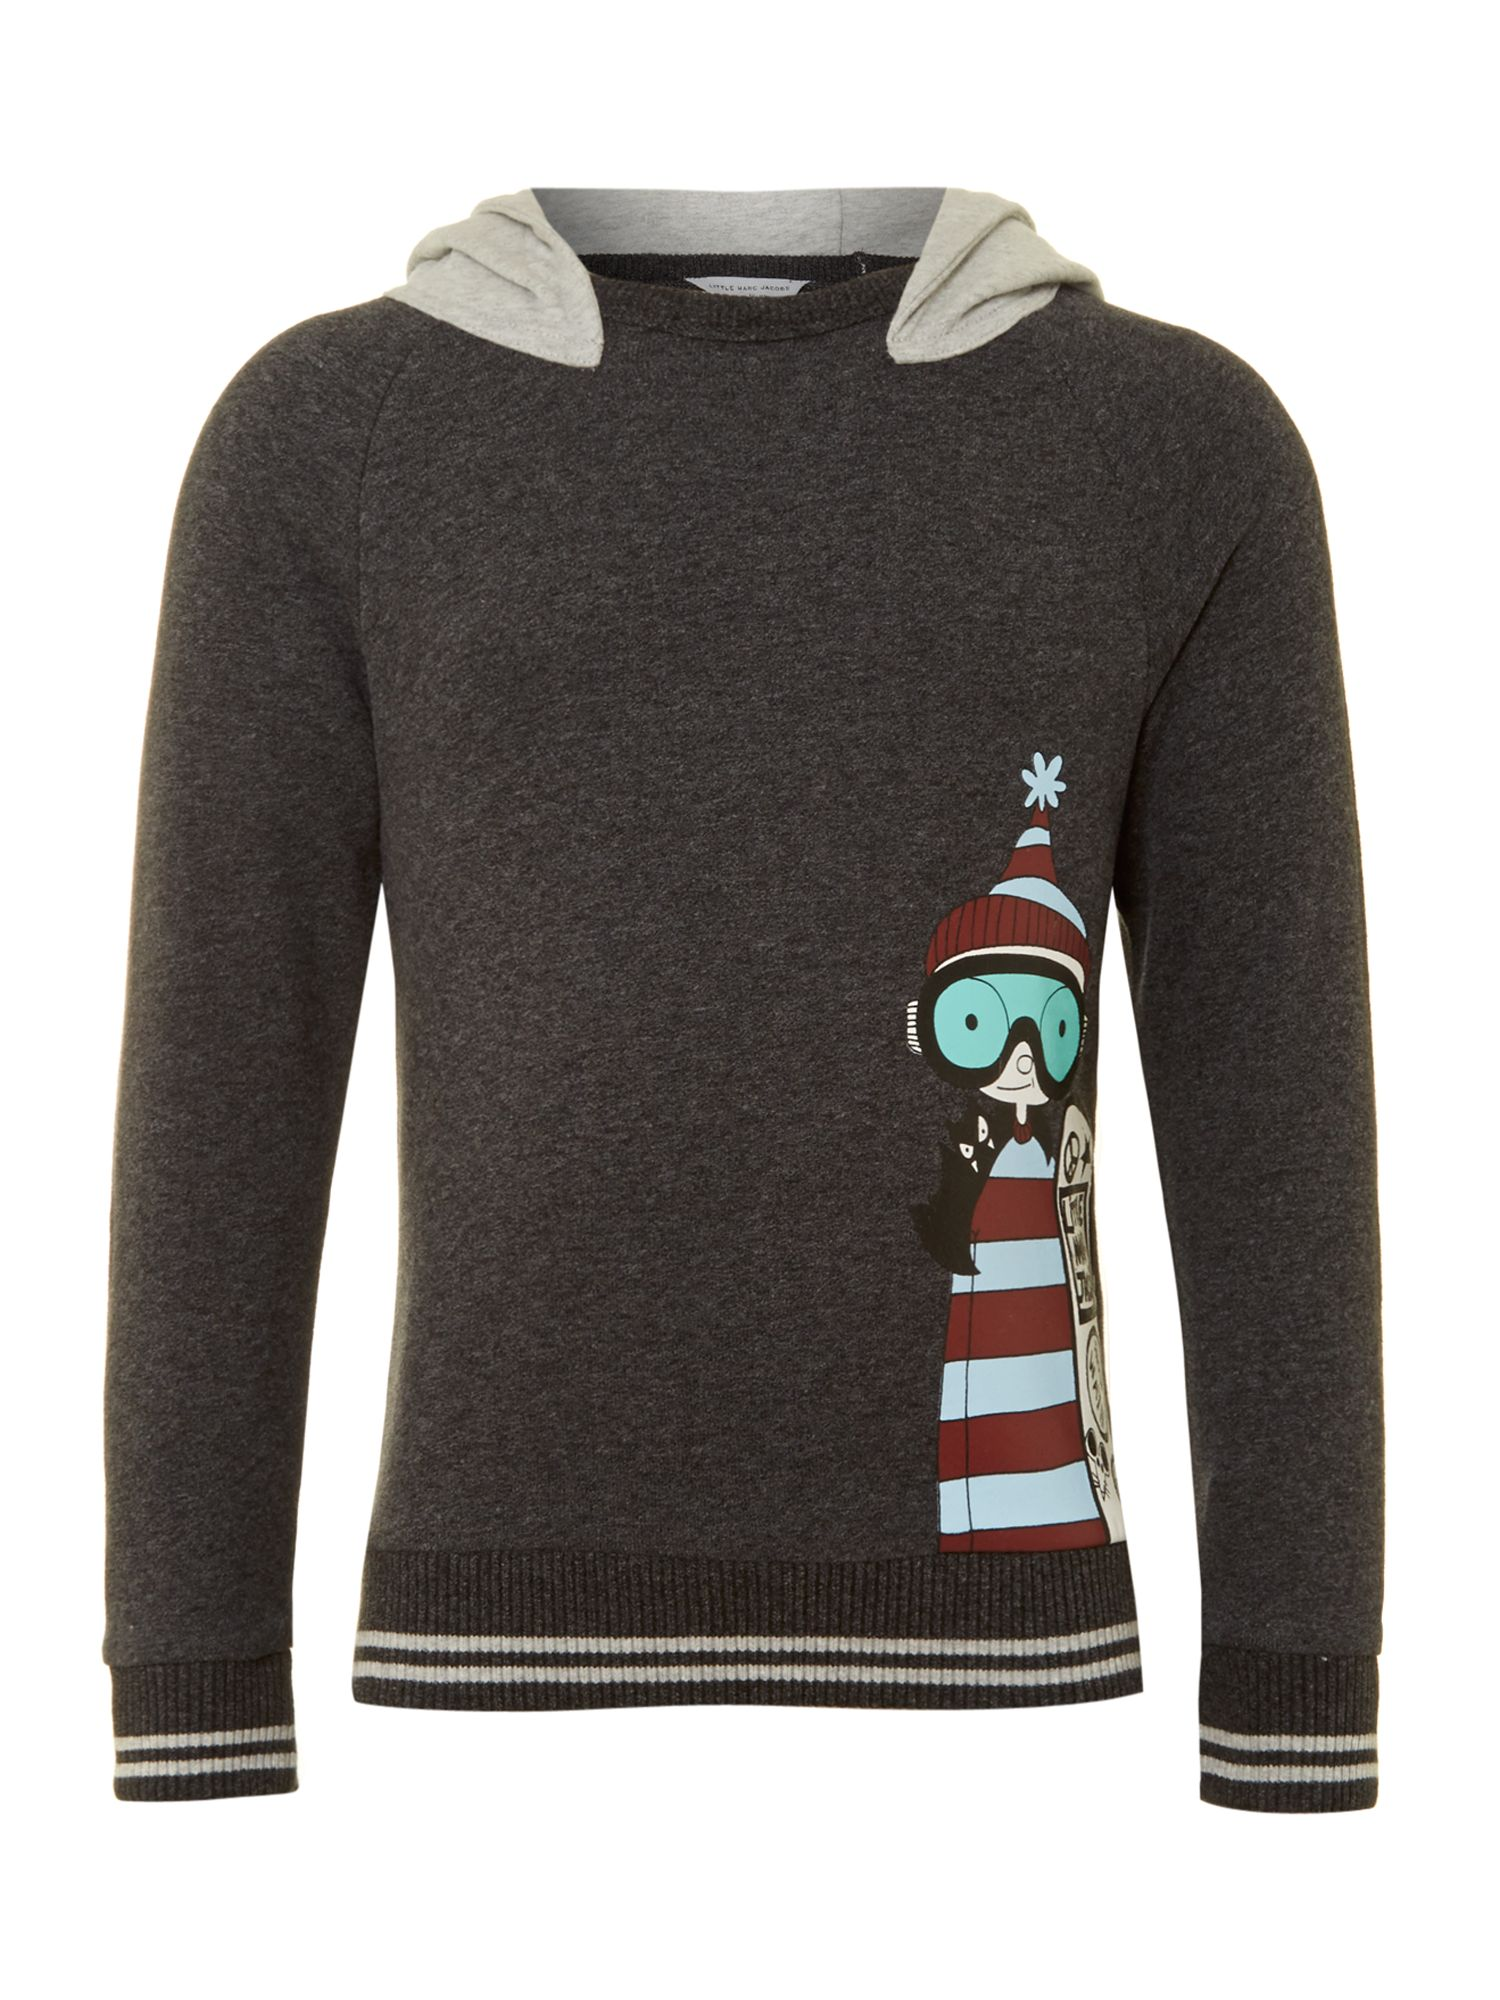 Boy`s long sleeve hooded top